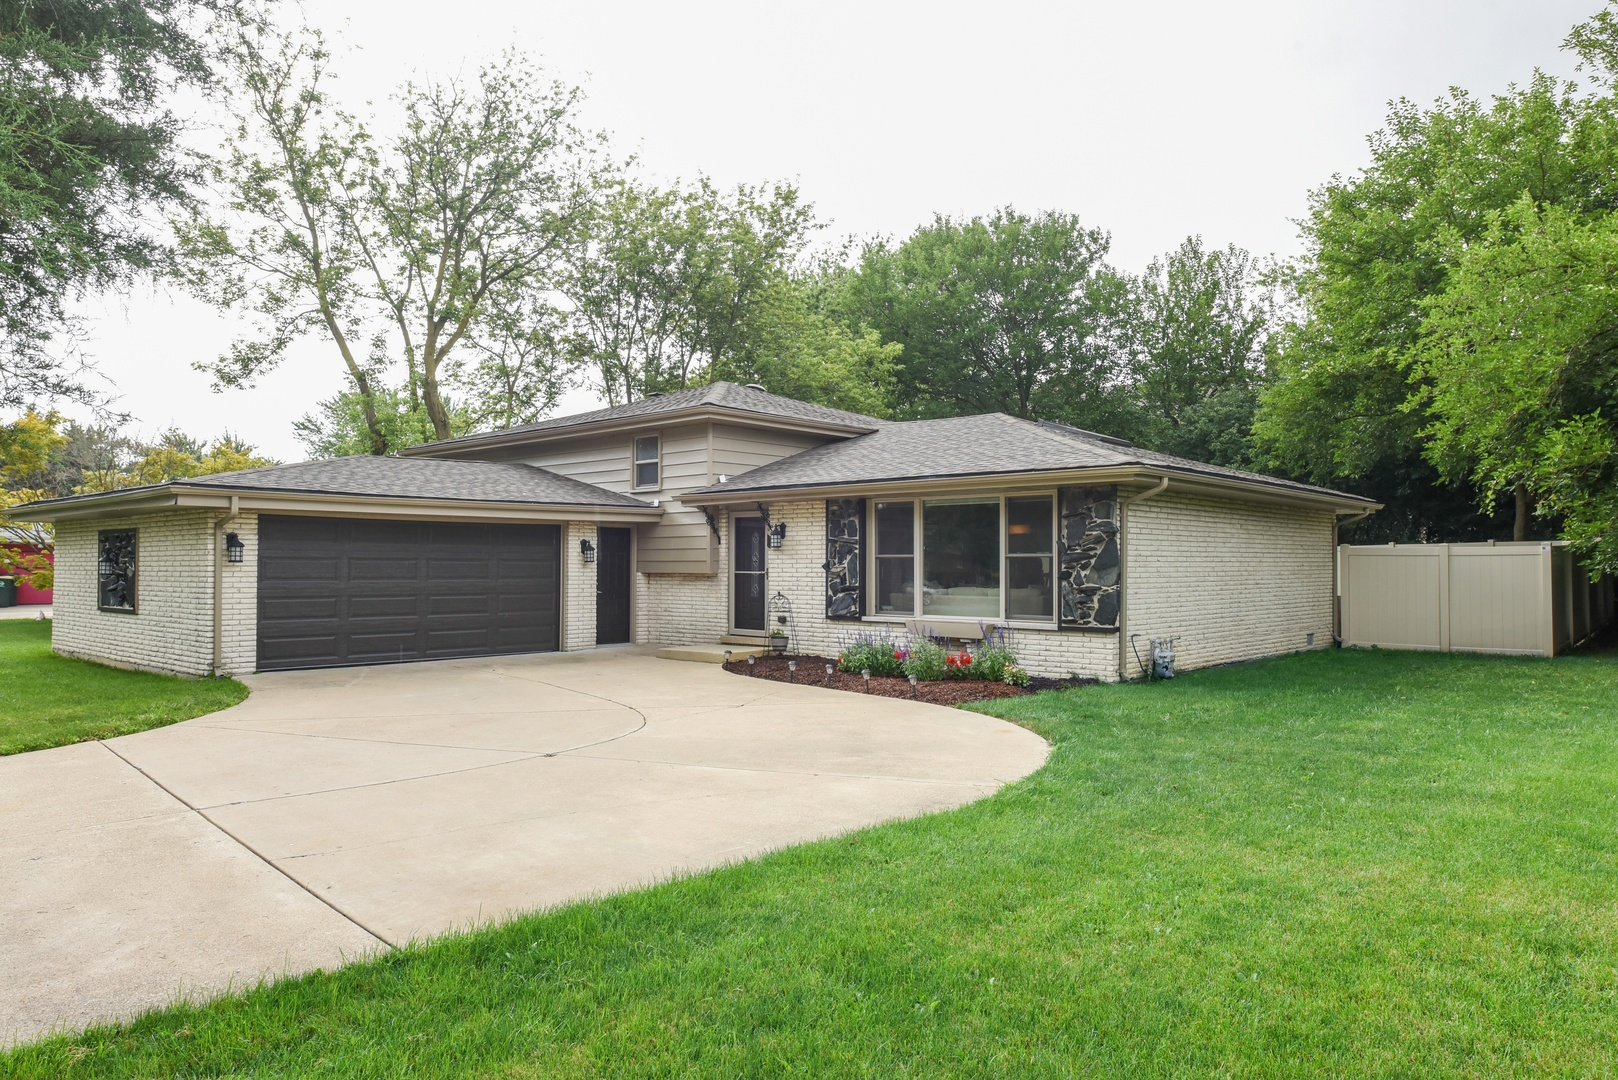 9S120 FLORENCE AVENUE, DOWNERS GROVE, IL 60516